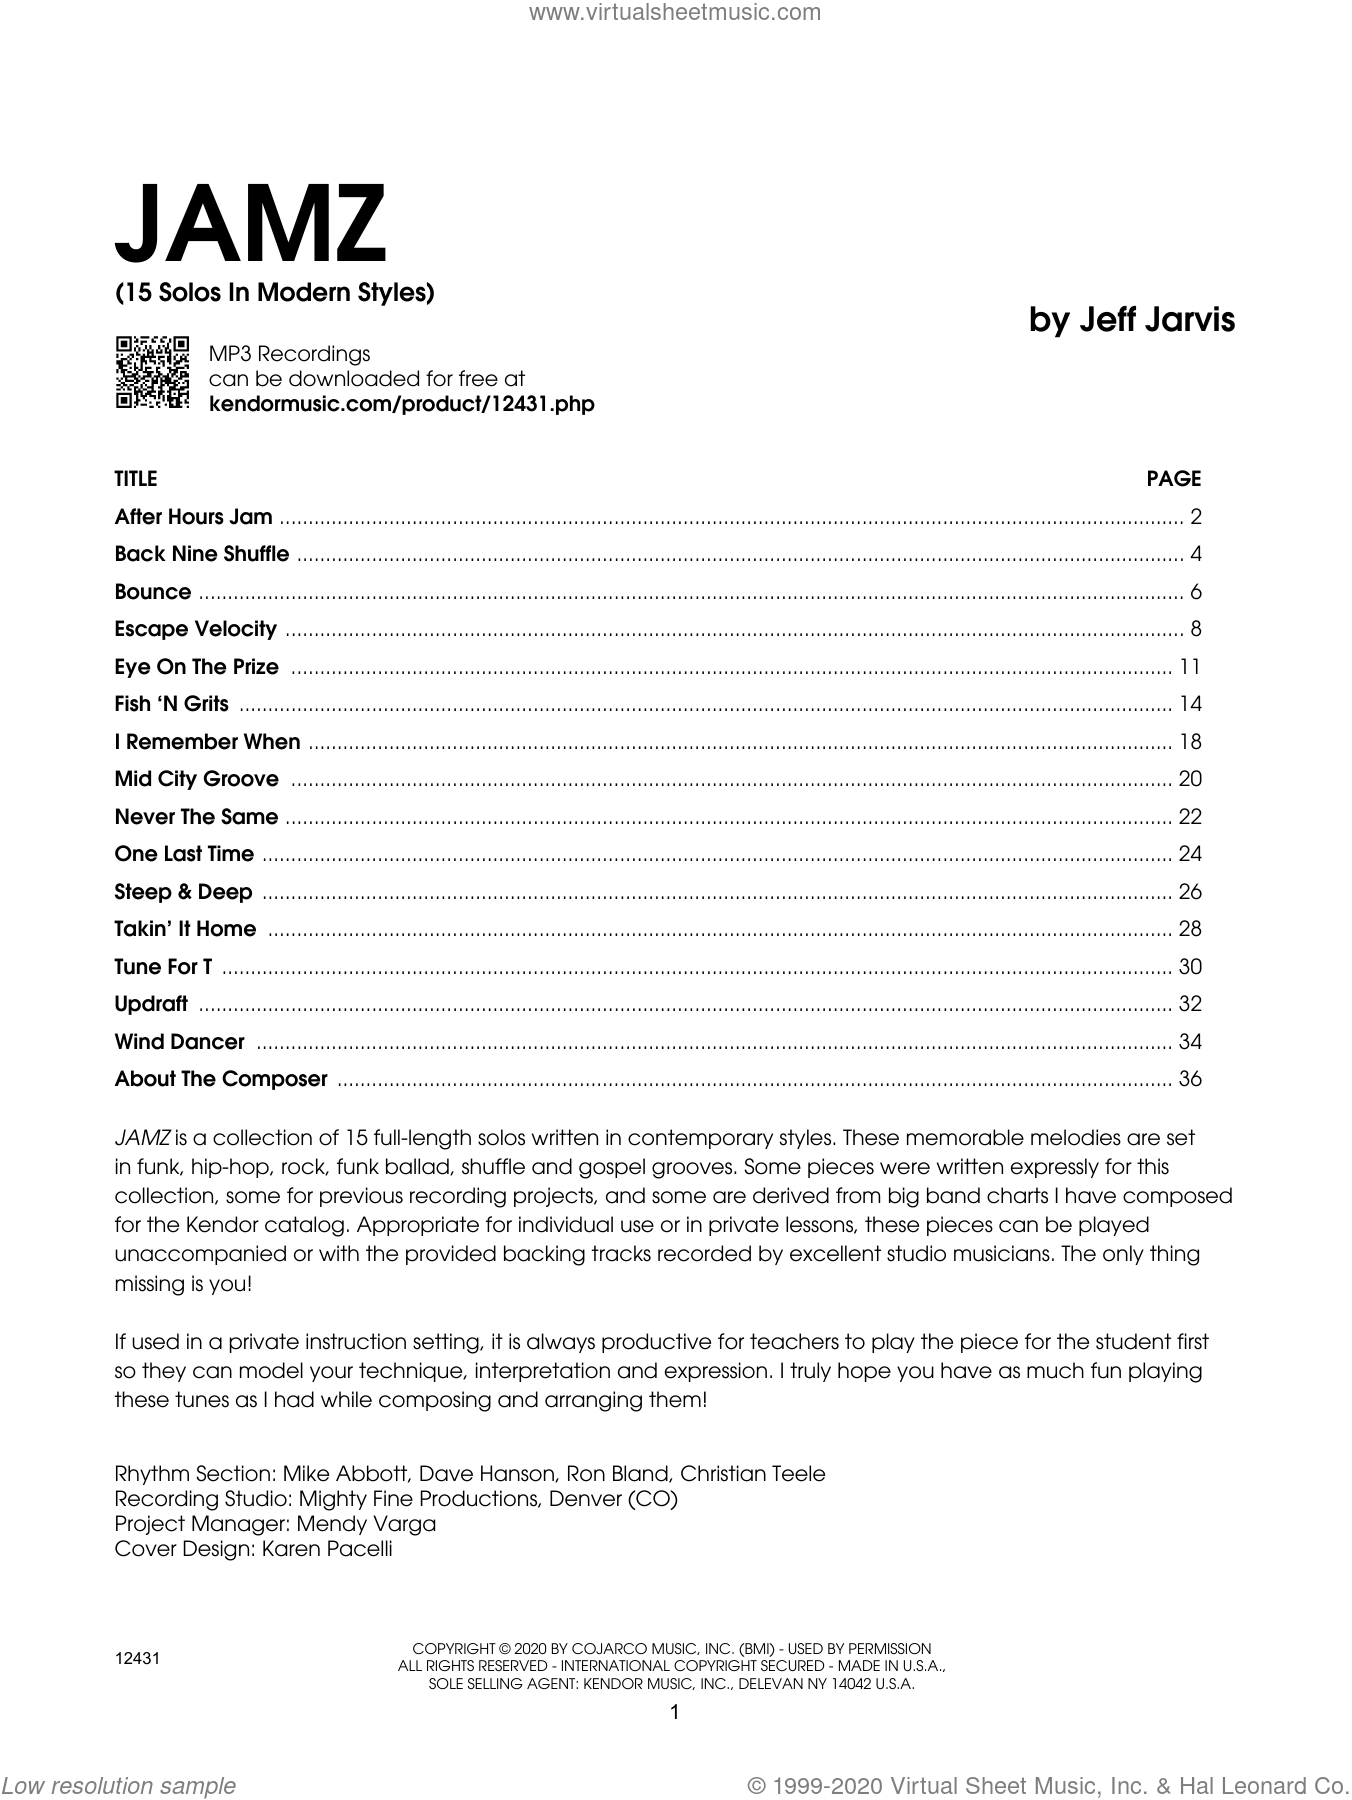 Jamz (15 Solos In Modern Styles) - Trombone sheet music for trombone solo by Jeff Jarvis, intermediate skill level